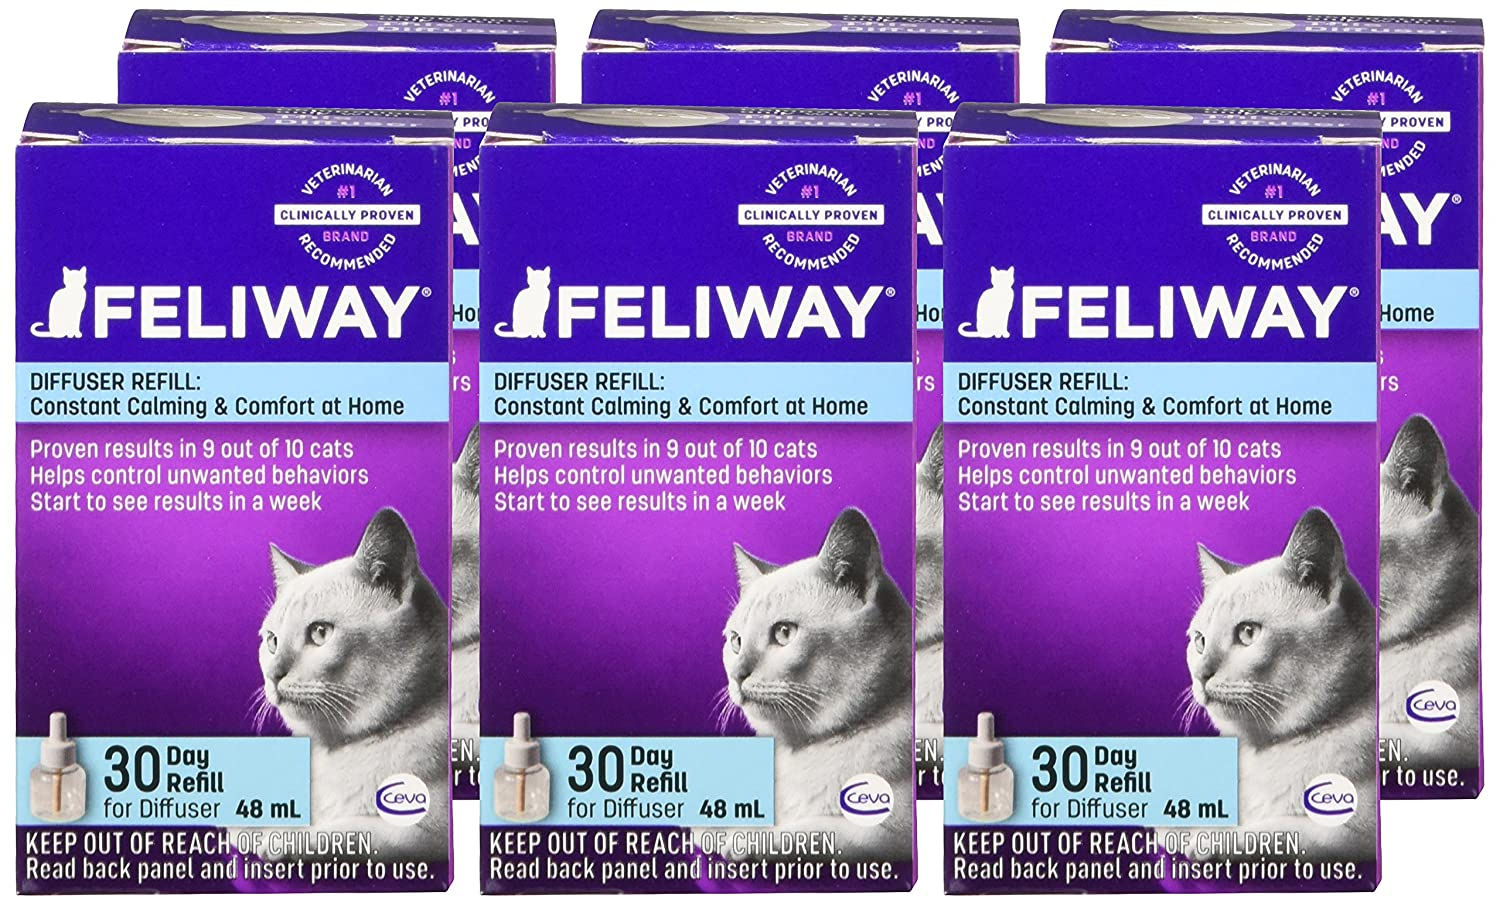 cat bottle diffuser cz pr to specific scratch treat comfort calming all urine need spot comforter products sprayscratch spray scratching marking control zone f our feliway a try area